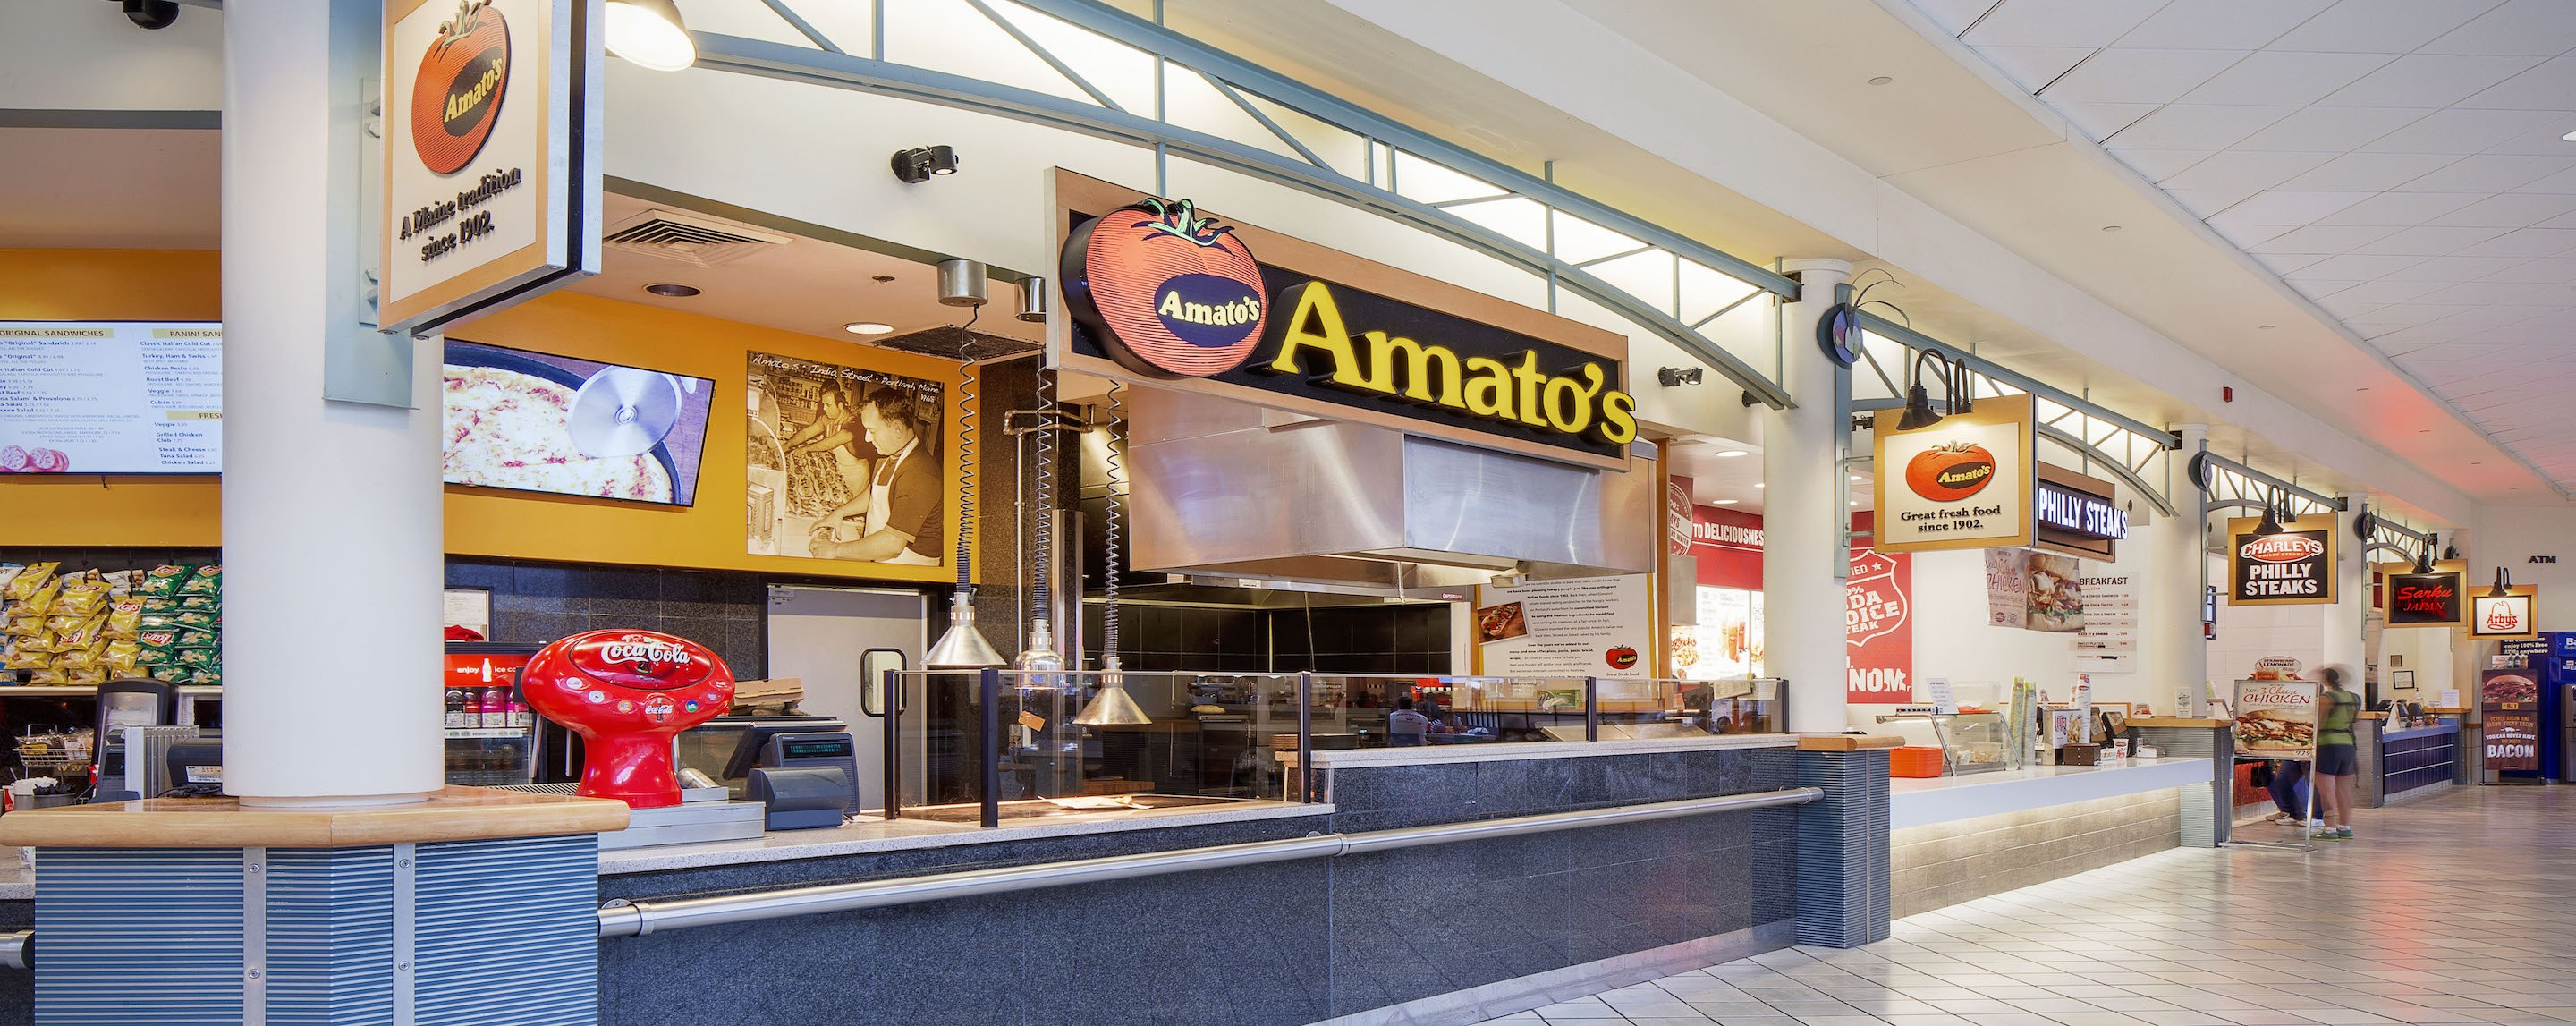 Arby's, Amato's, and Charlie's Philly Steaks stand side by side in an empty food court in a shopping center.